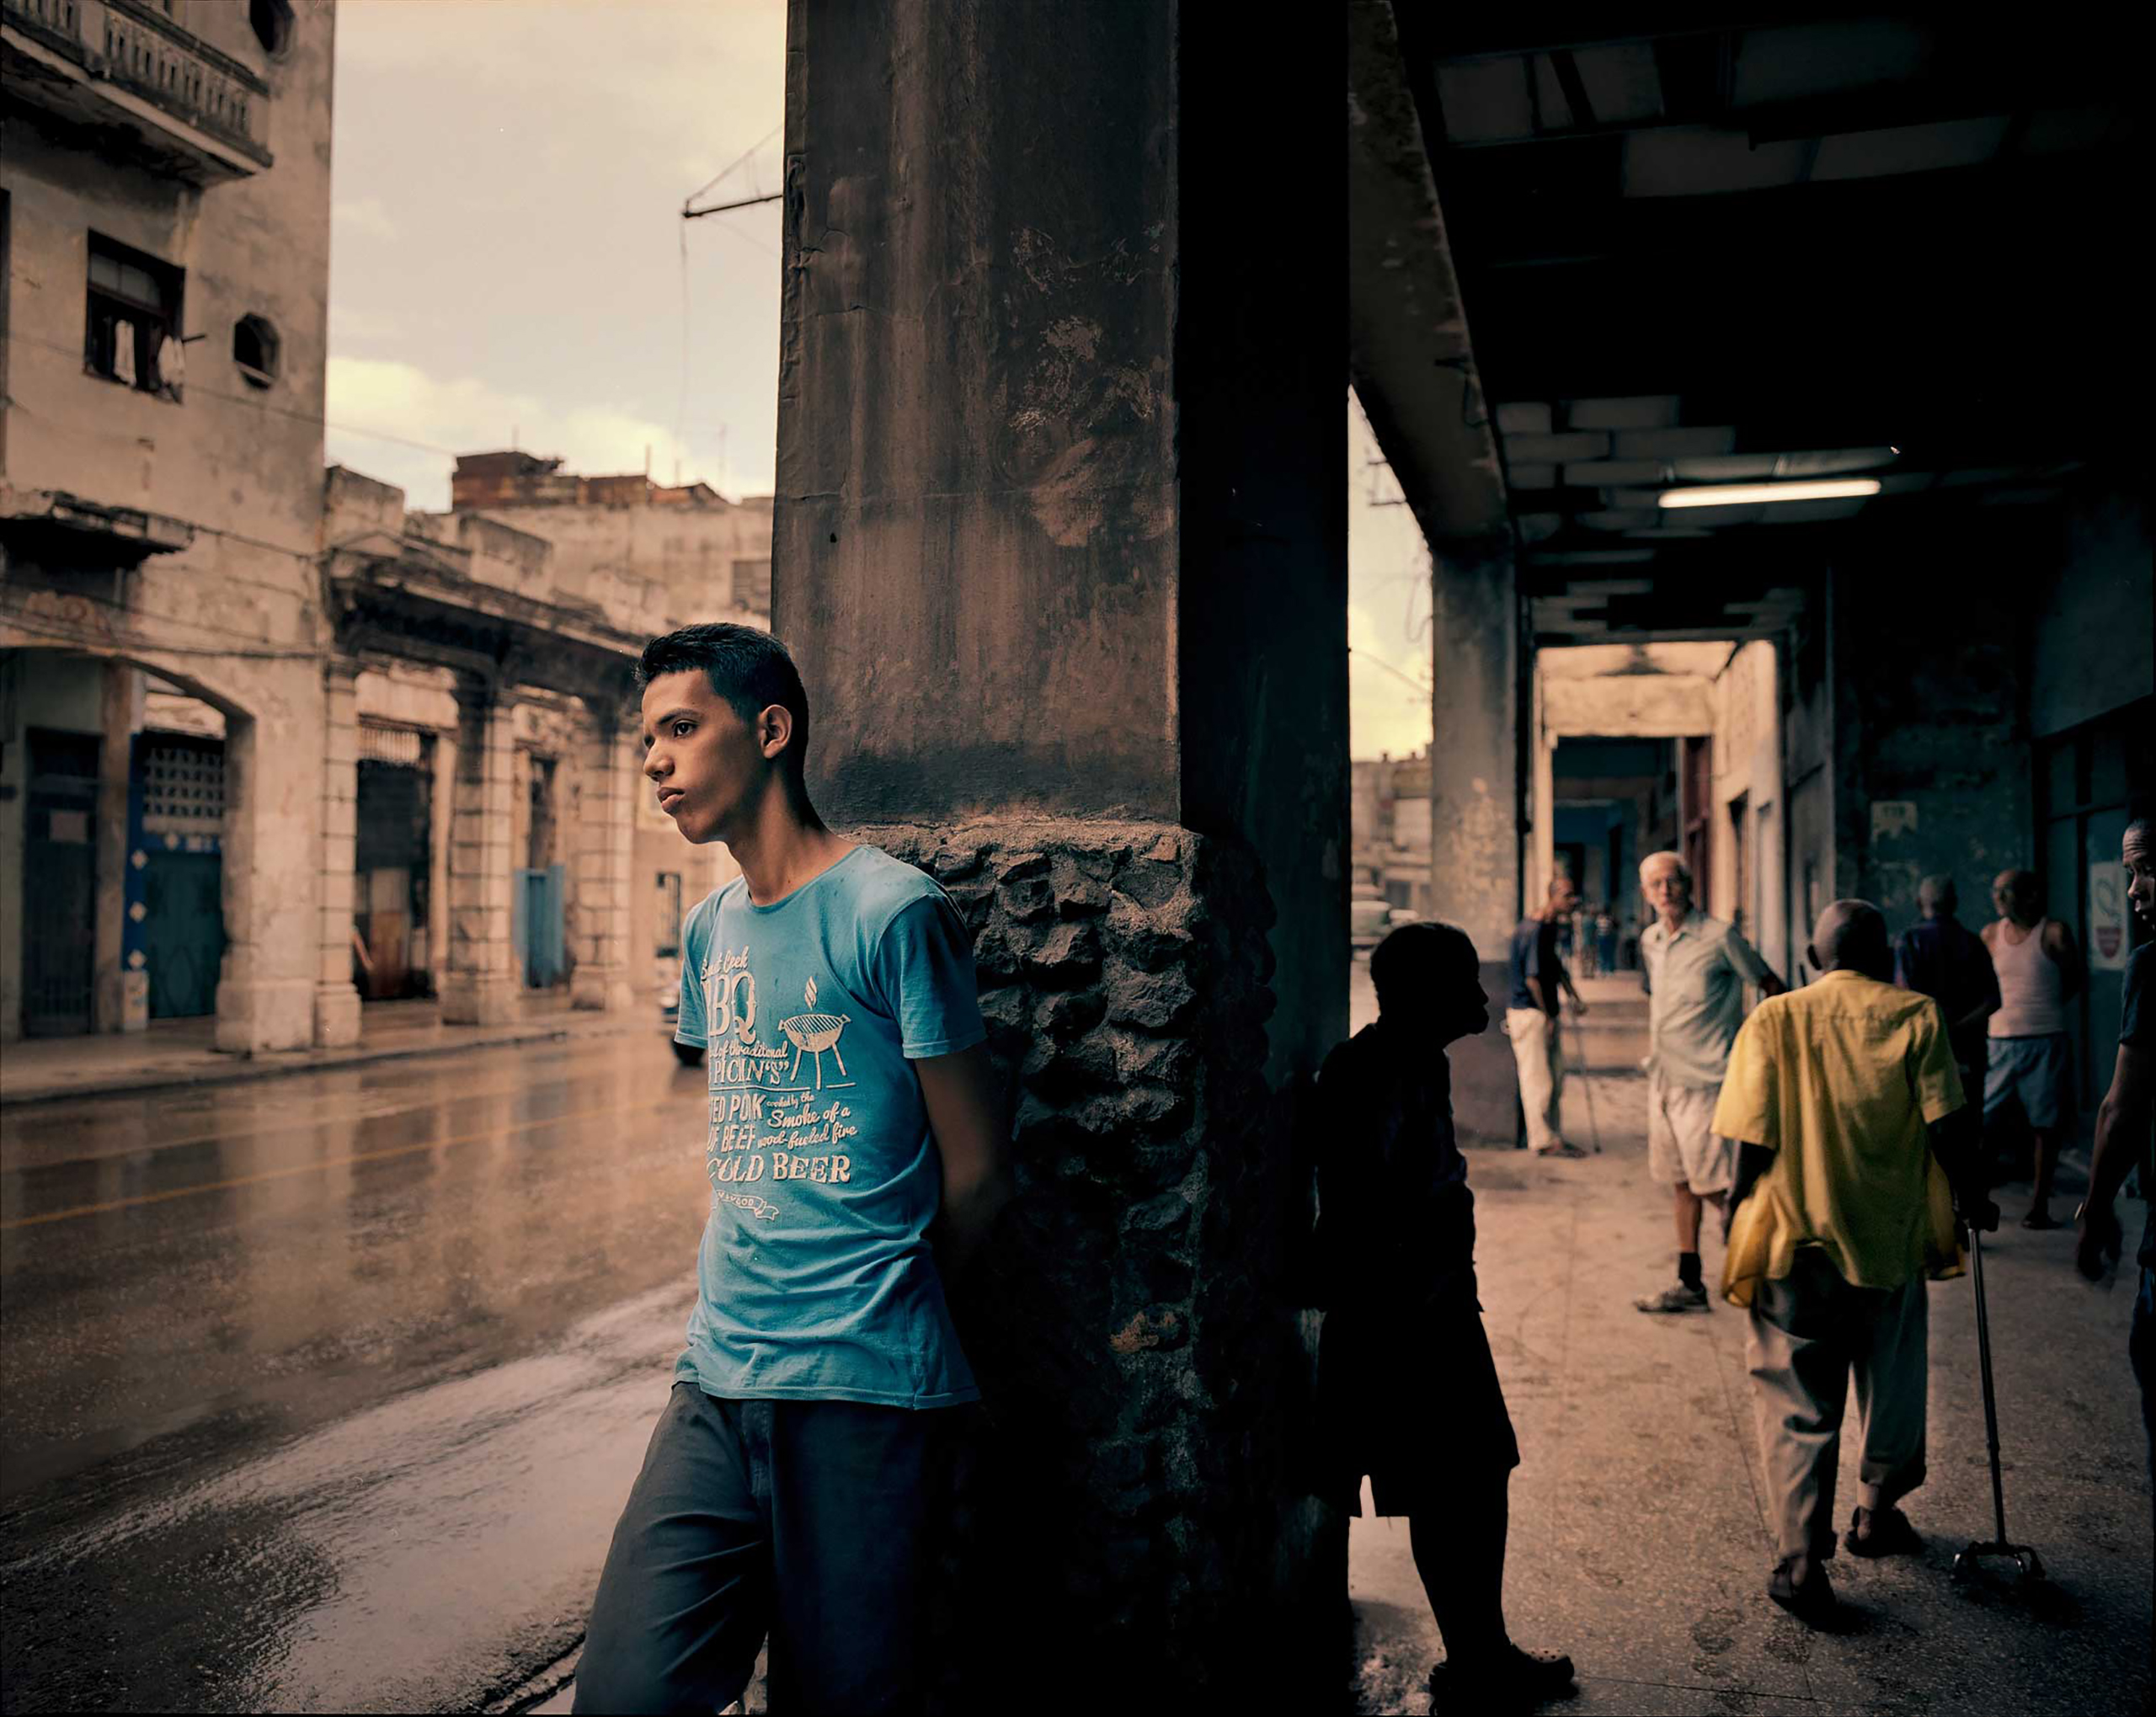 People find shelter from the rain, under old porches, in Havana.